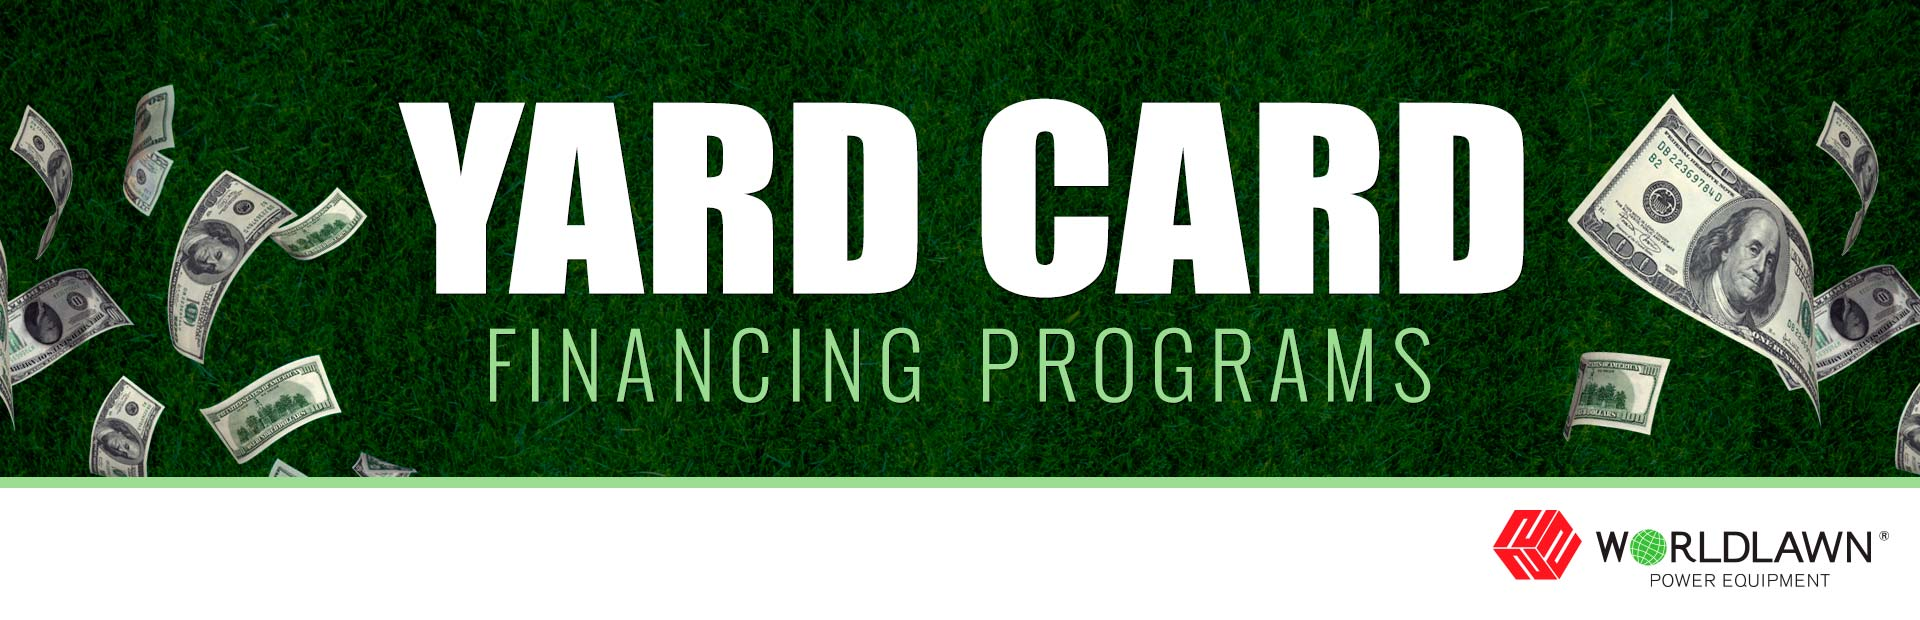 Worldlawn Power Equipment, Inc.: Worldlawn - Yard Card Financing Programs